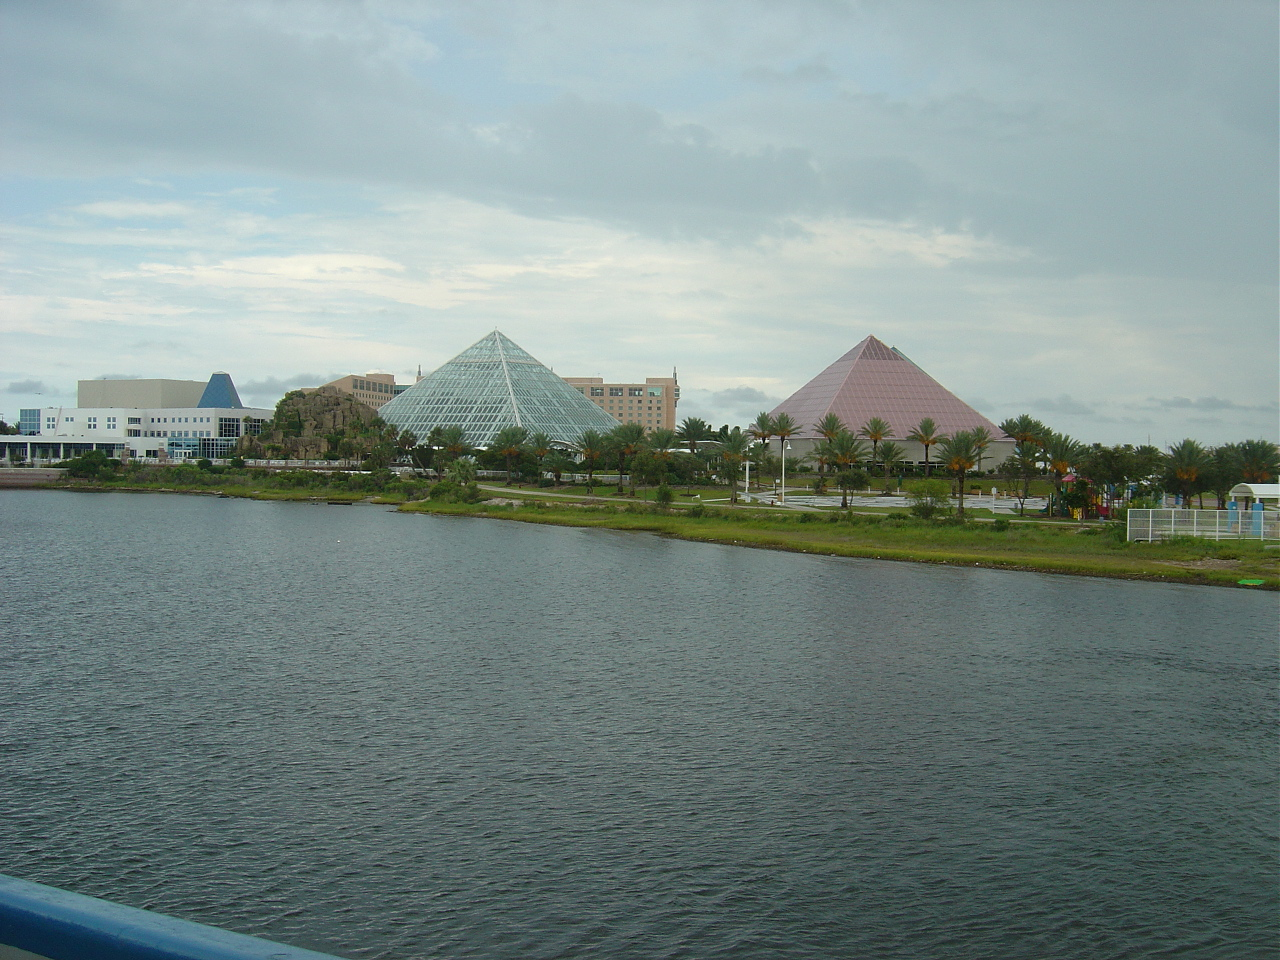 Moody Gardens Galveston Texas Wallpaper 557868 Fanpop